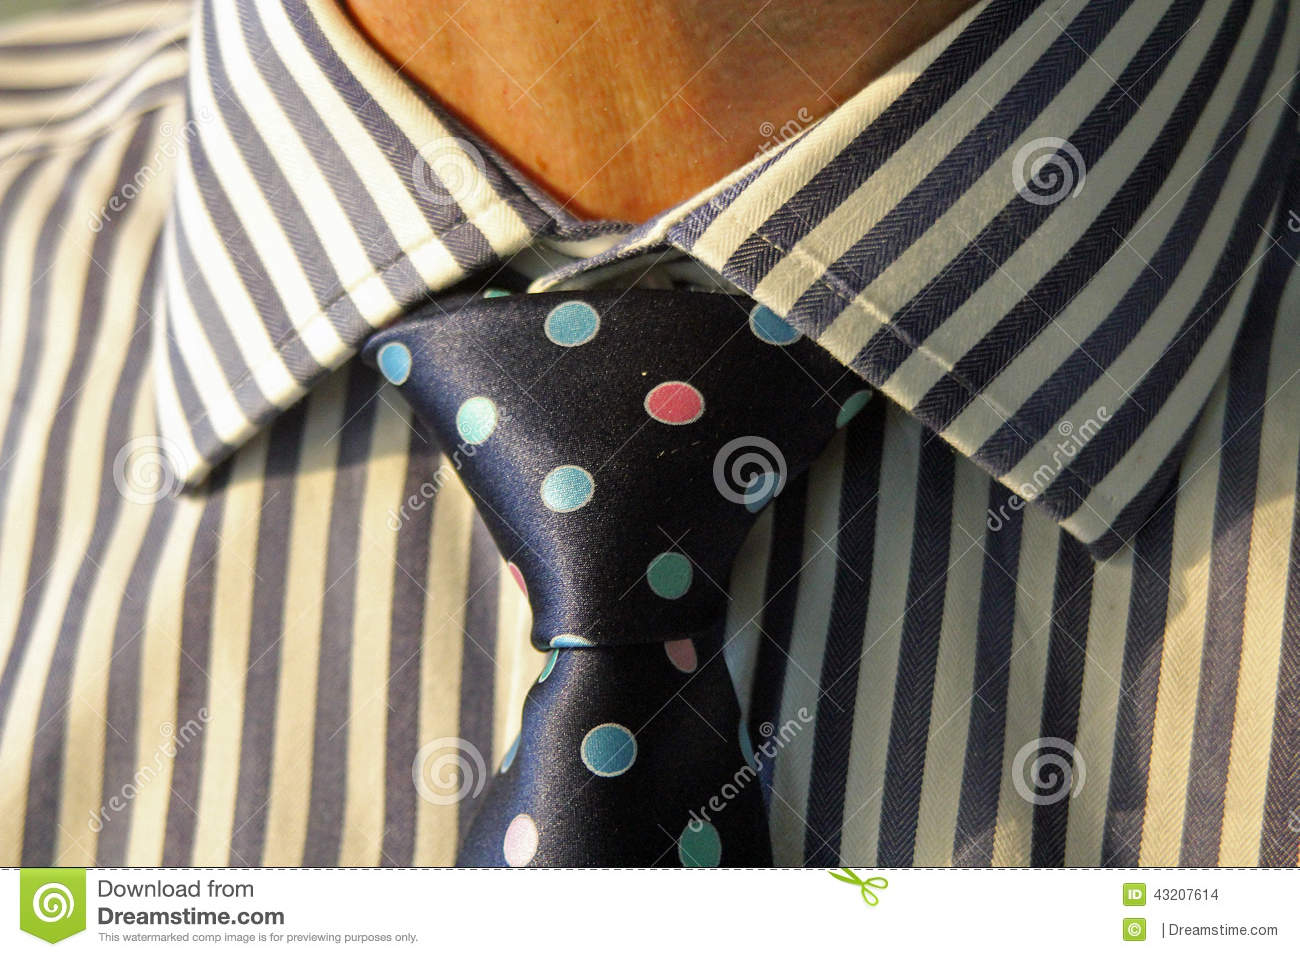 Worker with striped tie and spotty tie